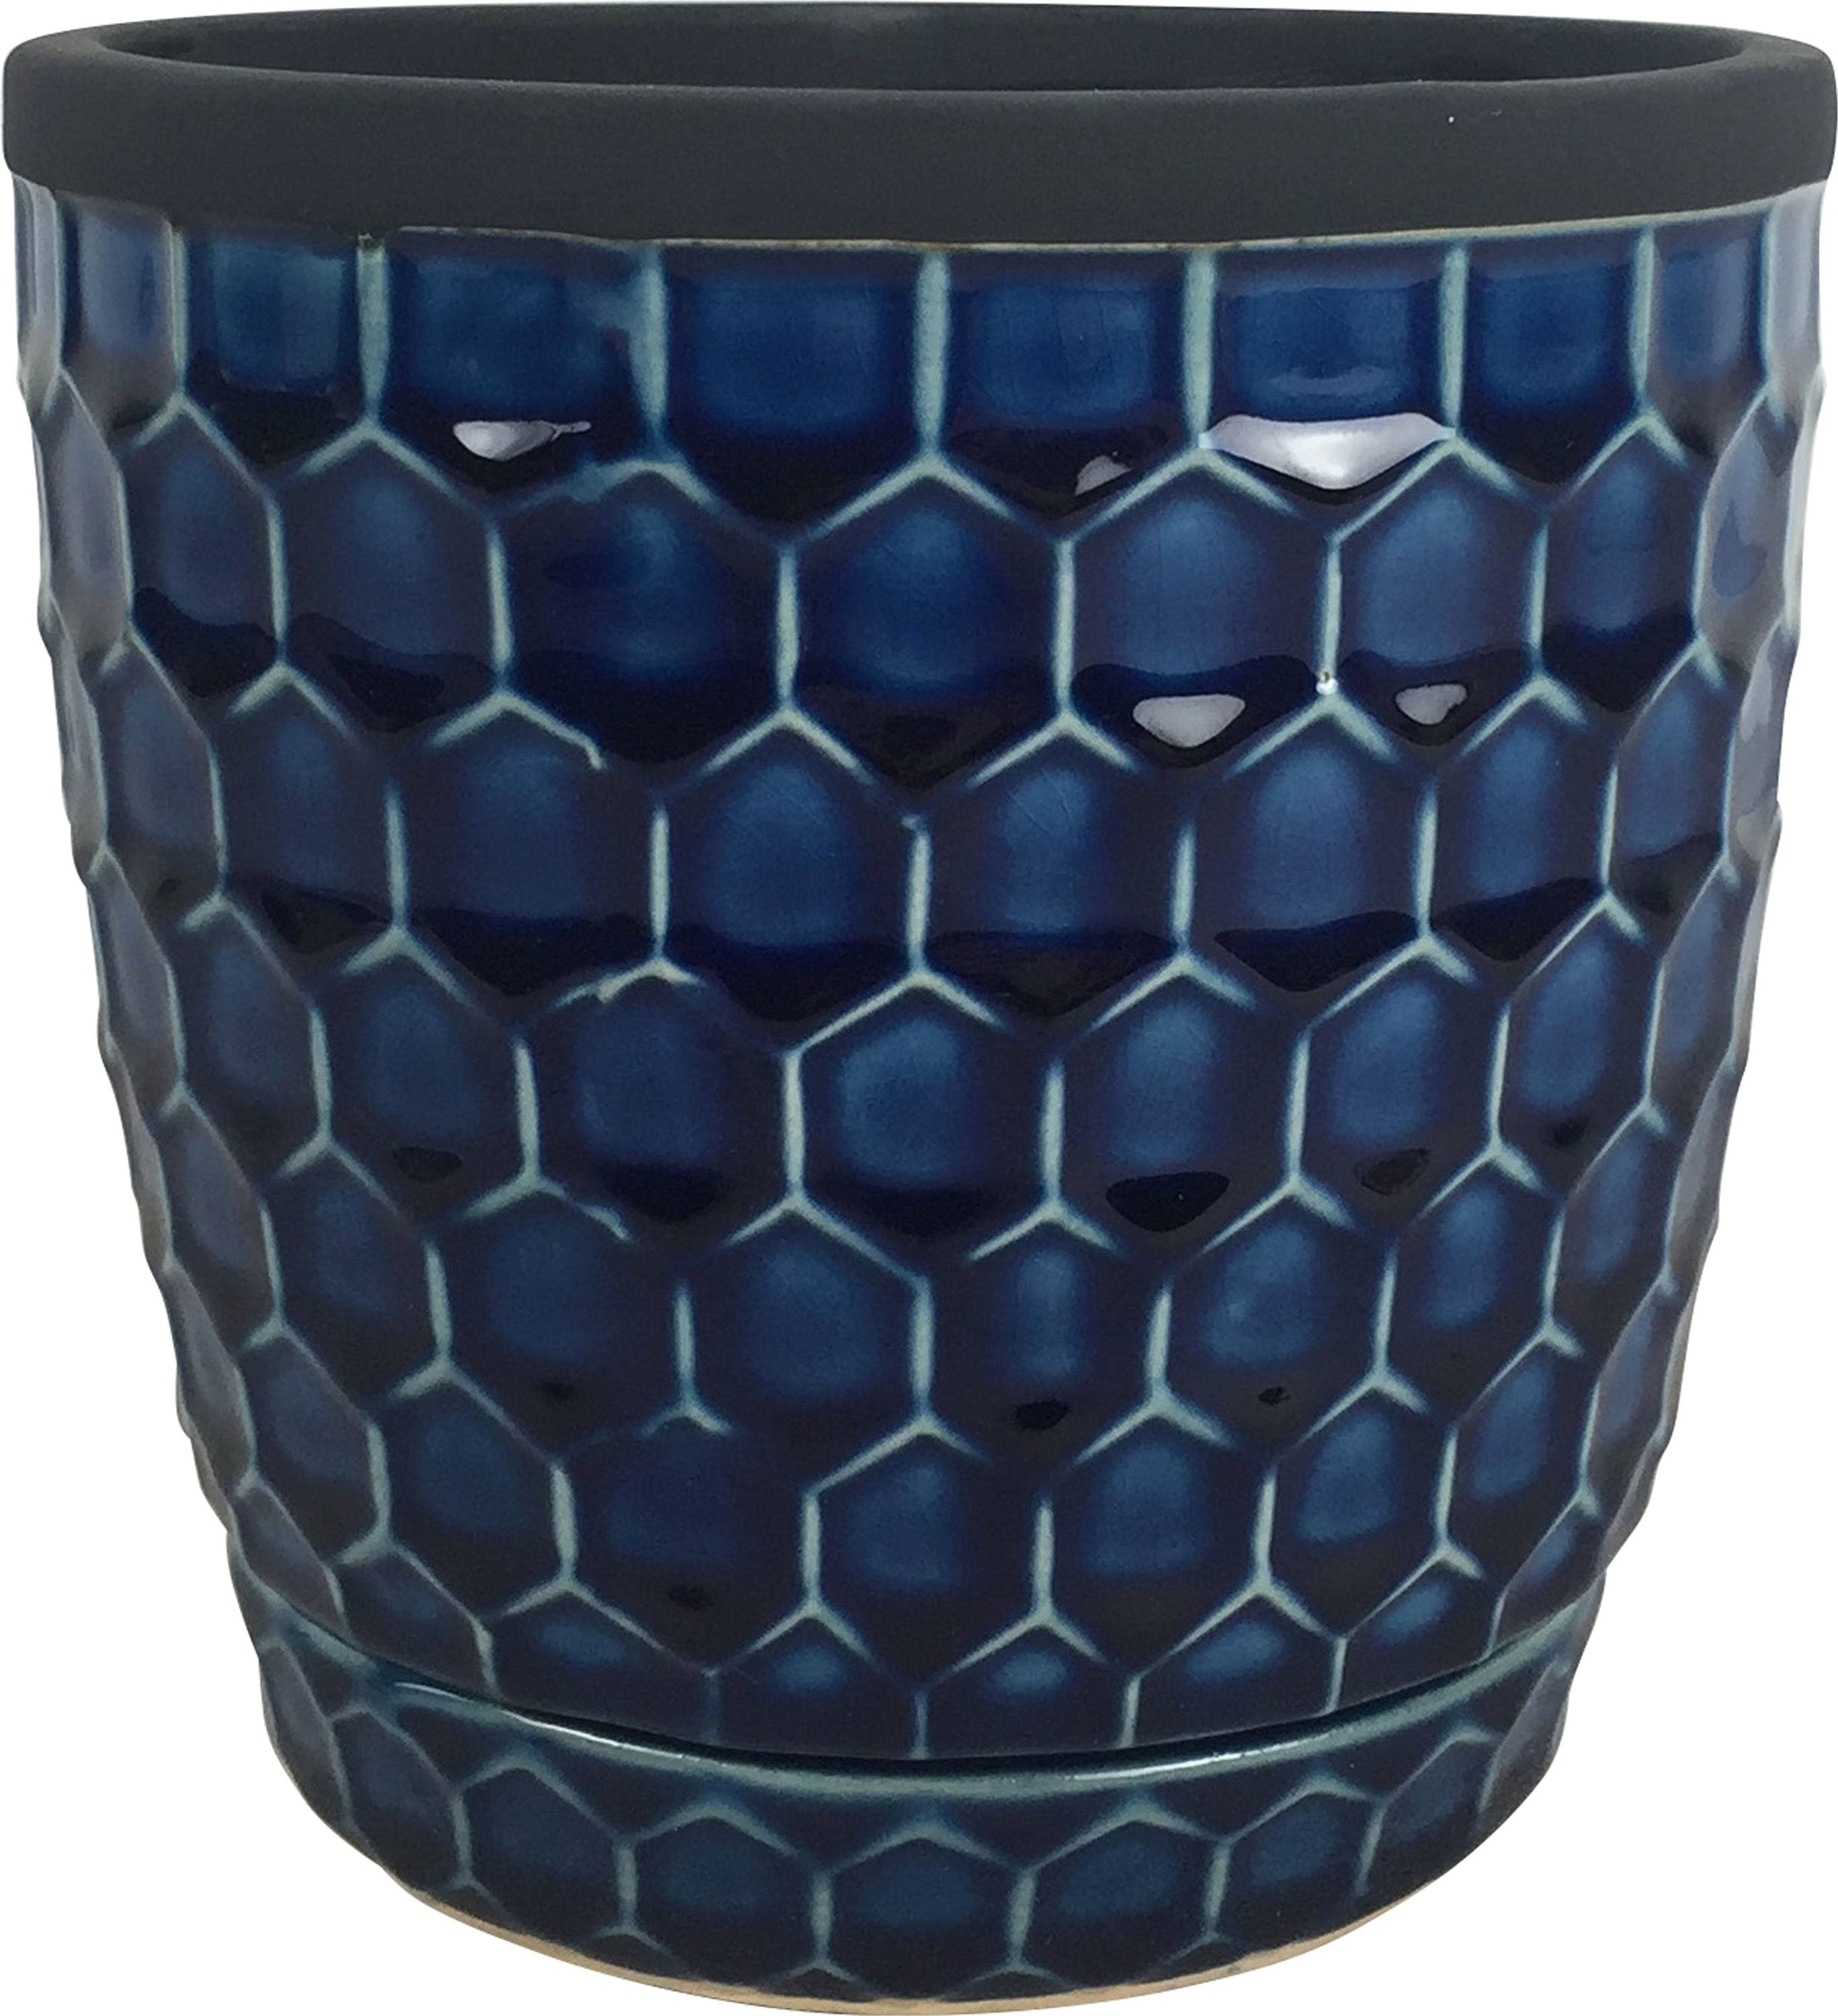 Southern Patio Honeycomb Planter - Cobalt